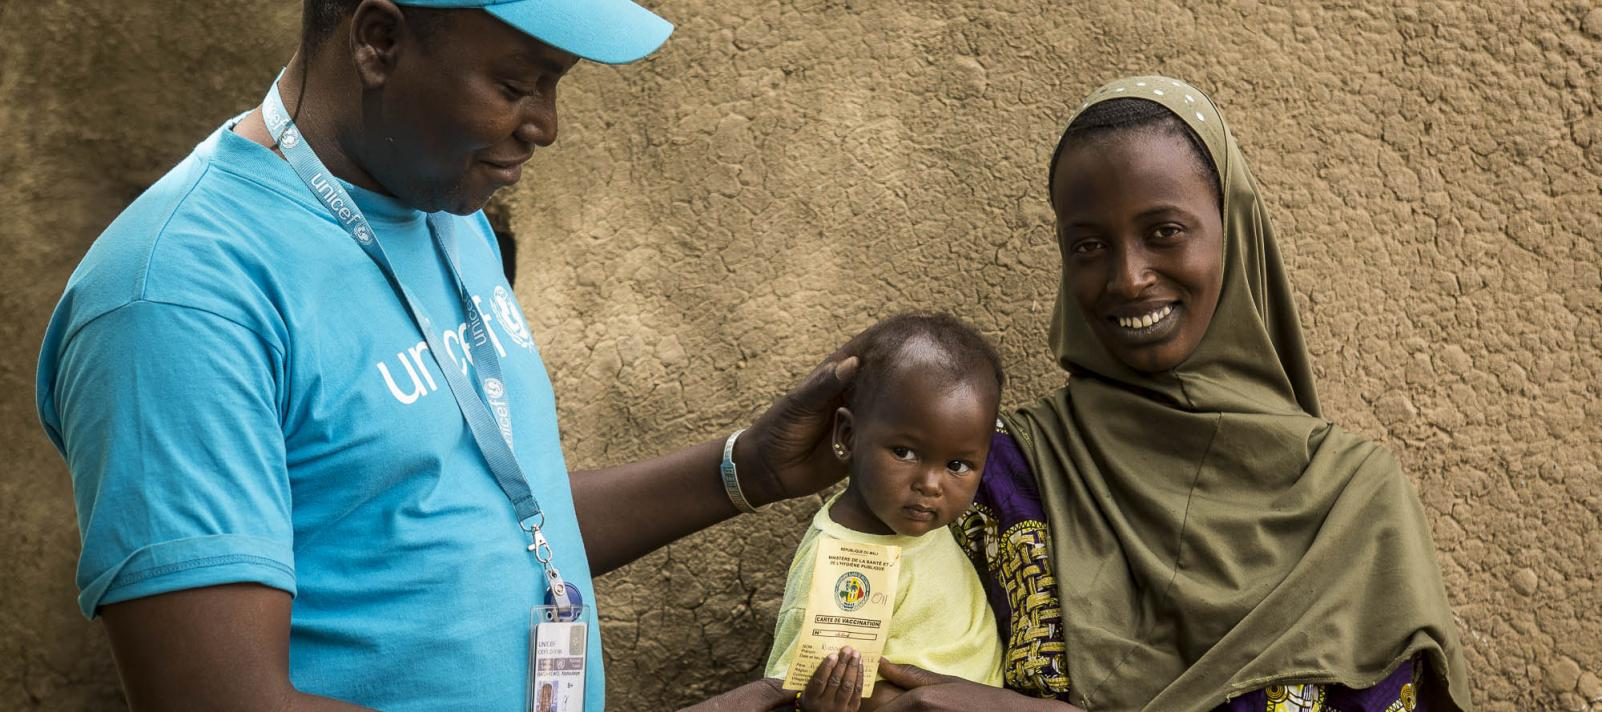 Abdoulaye Bagayoko, Immunization officer at UNICEF's Mopti field office, sensitizing a mother to complete the vaccination of her child